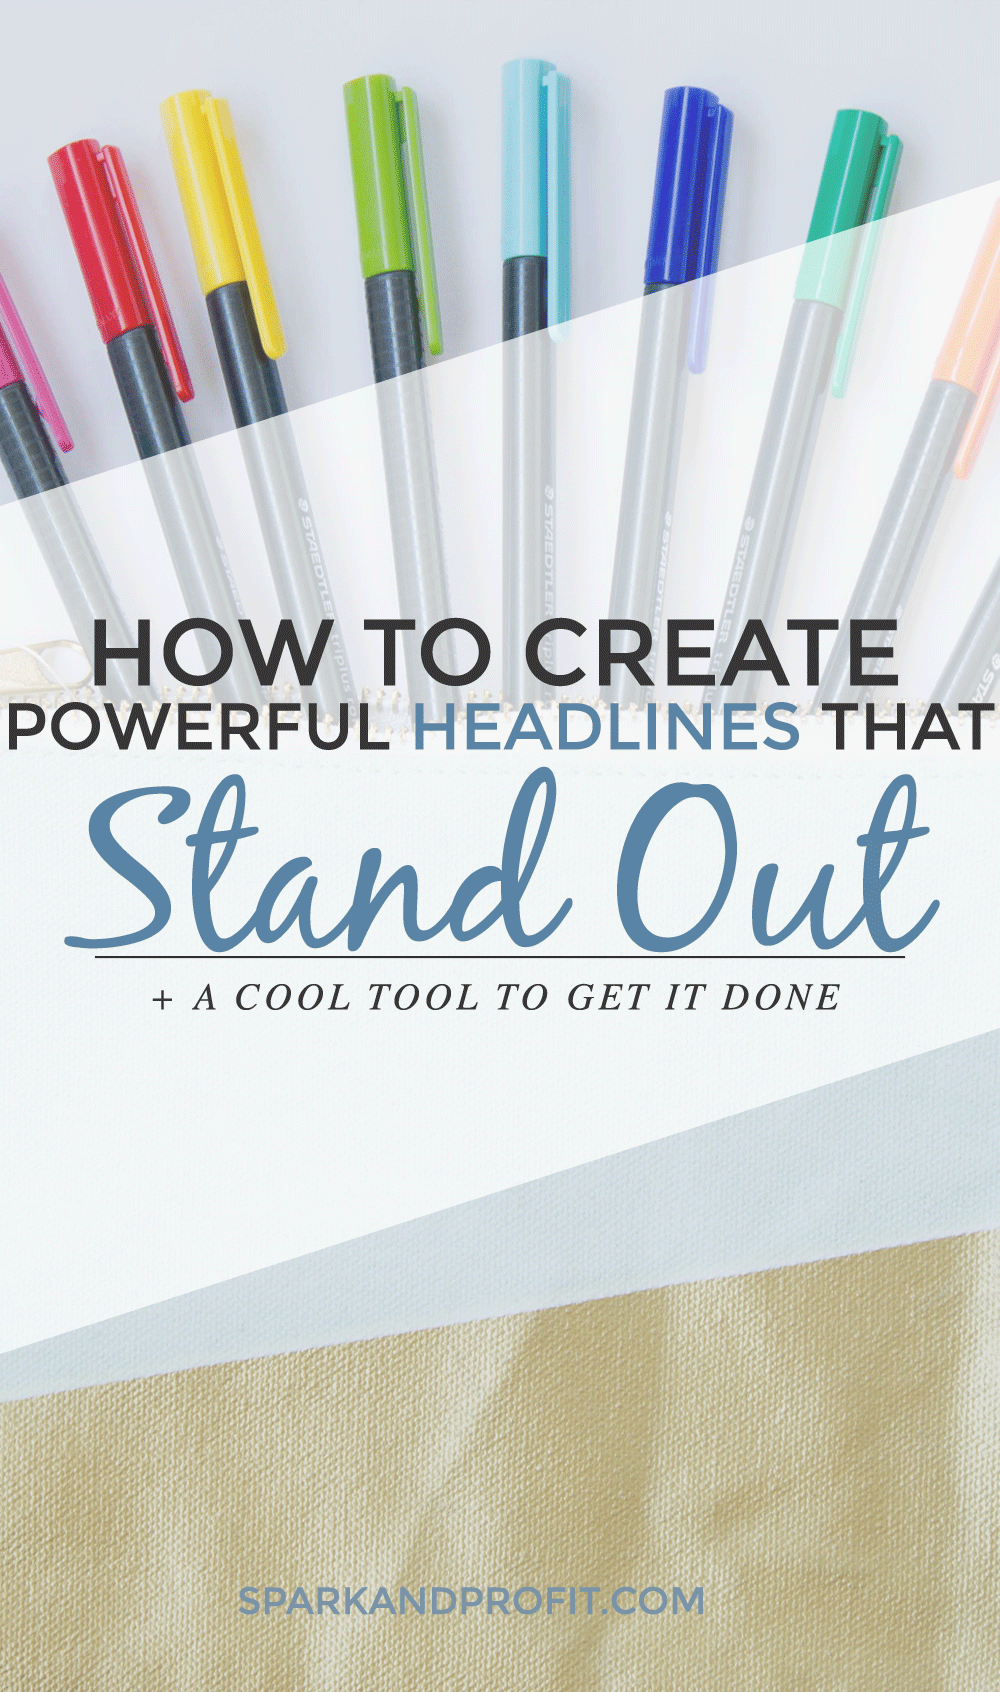 How to Create Powerful Headlines That Stand Out